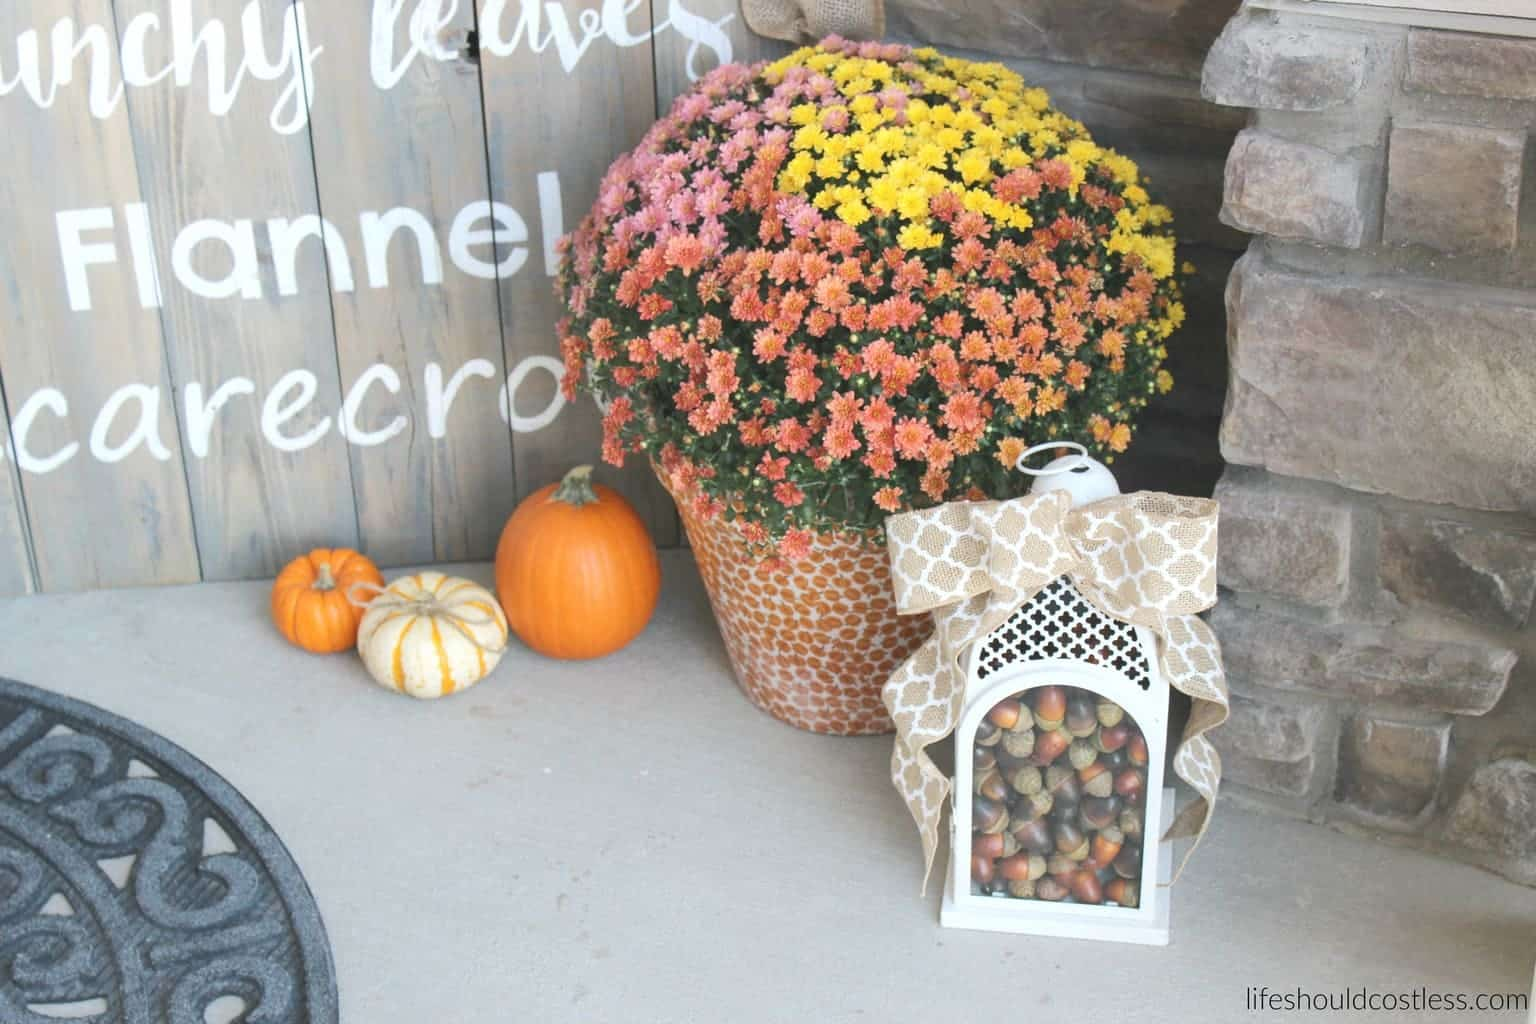 Rustic fall porch decor reveal. See this post and many more popular decor pins at lifeshouldcostless.com. Lantern filled with acorns.